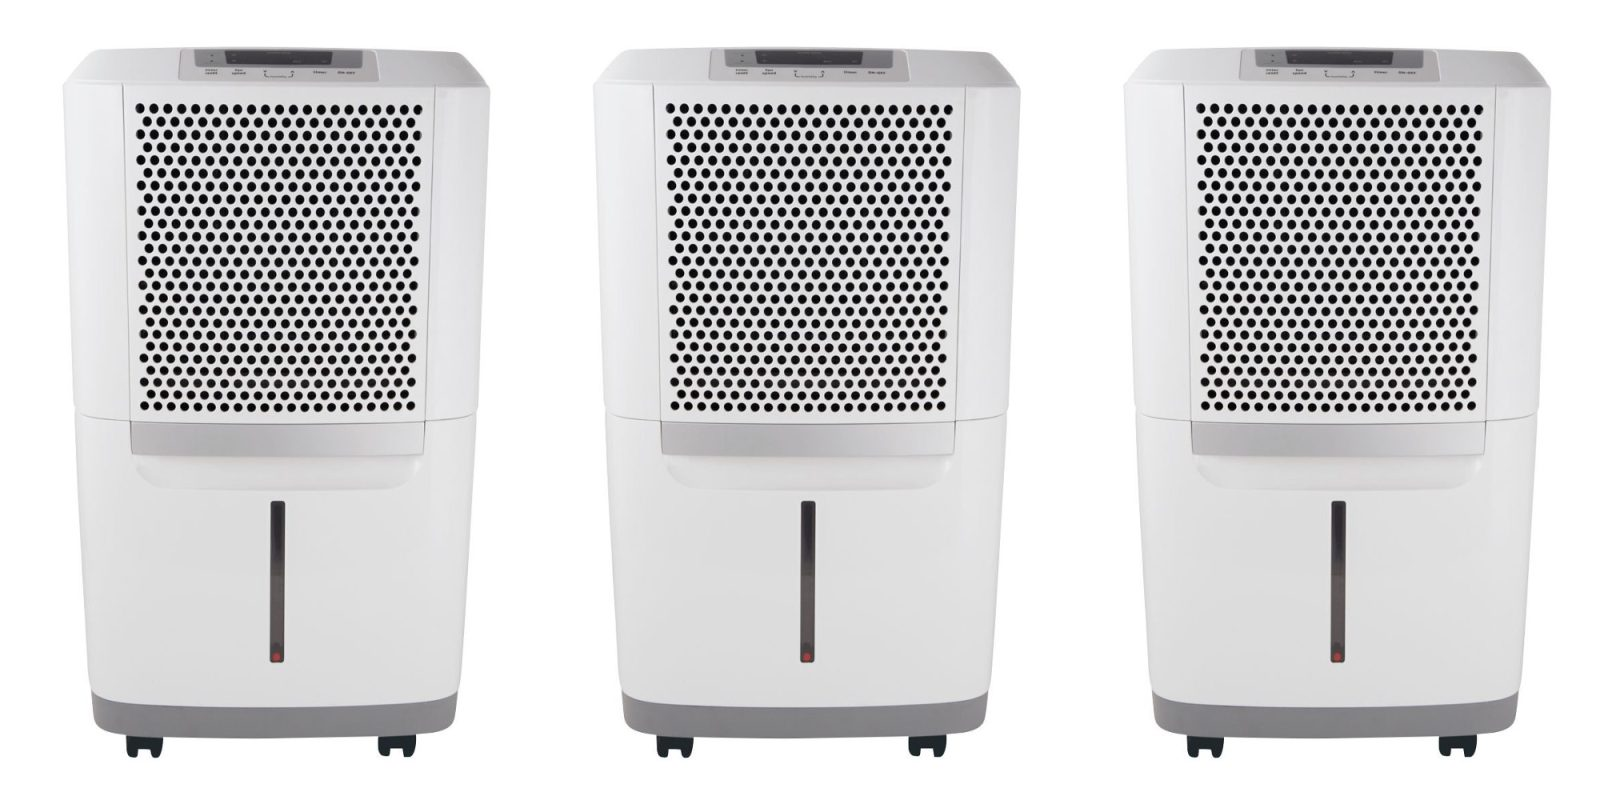 Frigidaire's 50-Pint Dehumidifier is $60 off for today only at $150 shipped